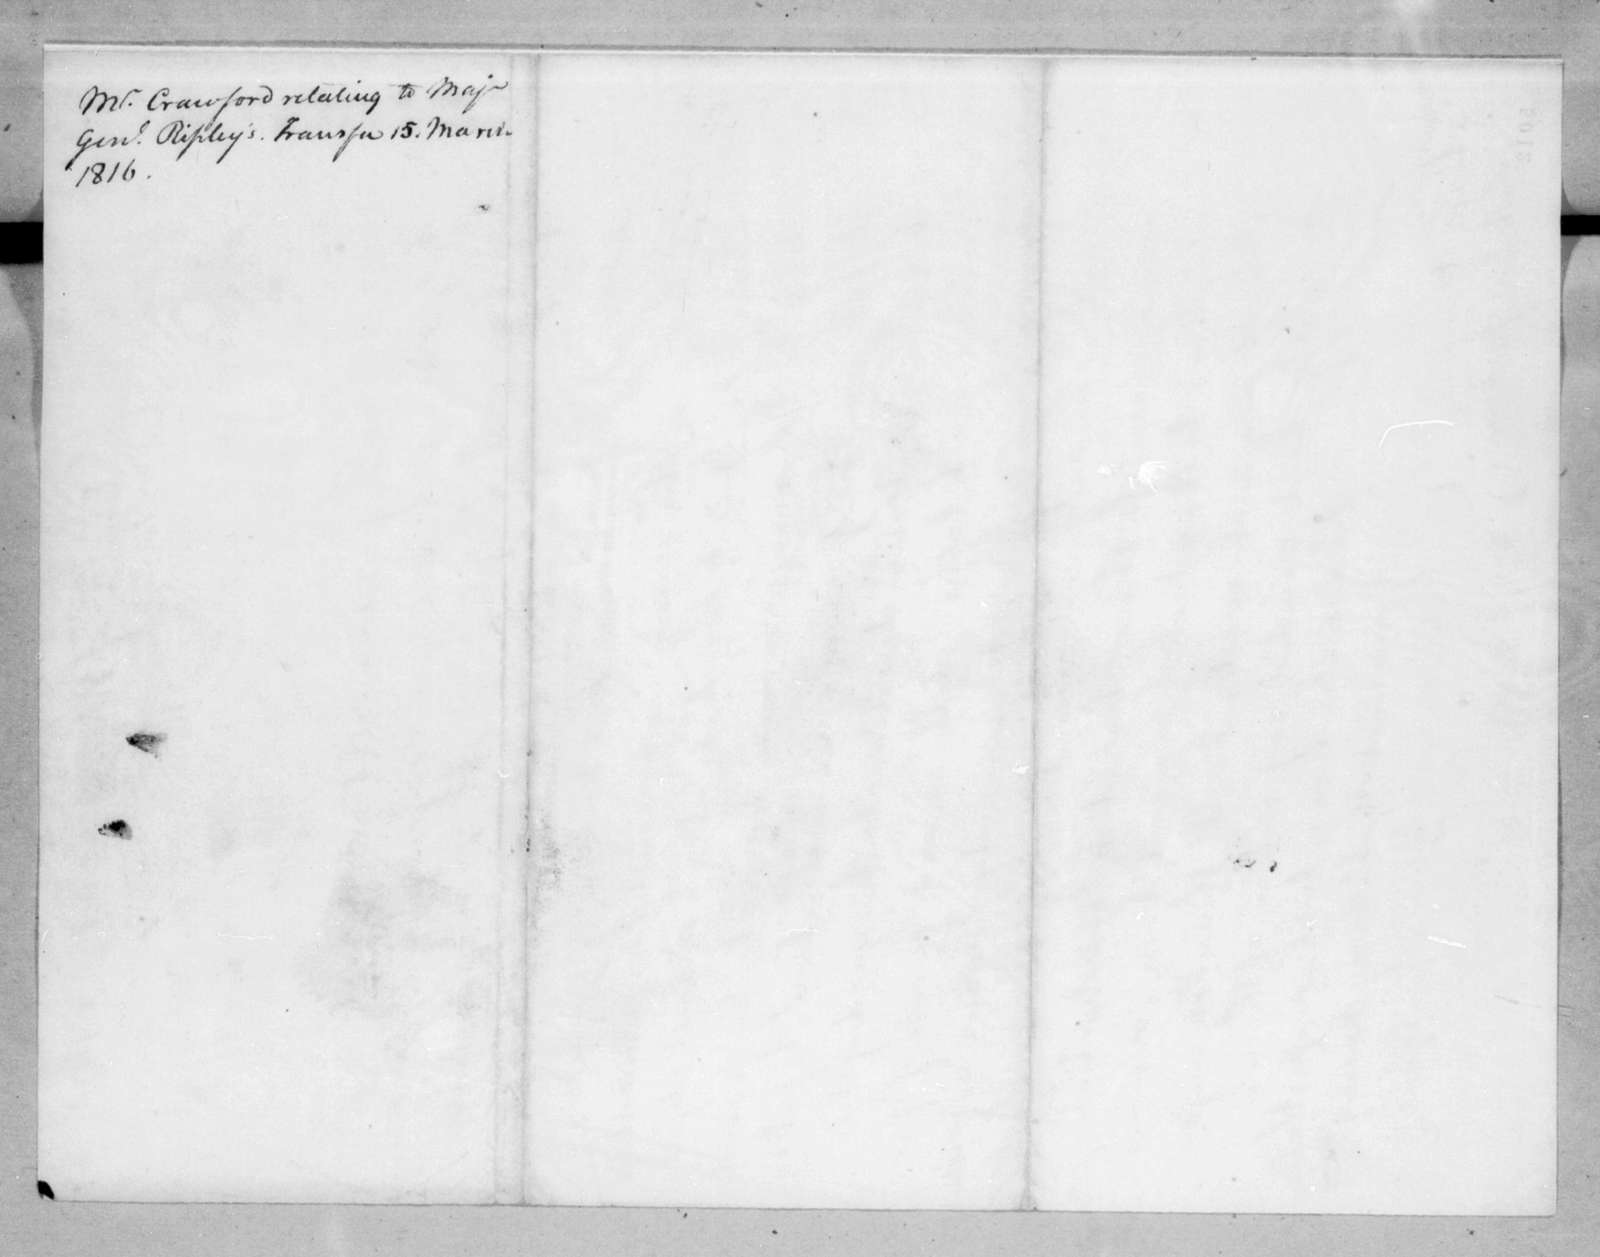 William Harris Crawford to Andrew Jackson, March 15, 1816